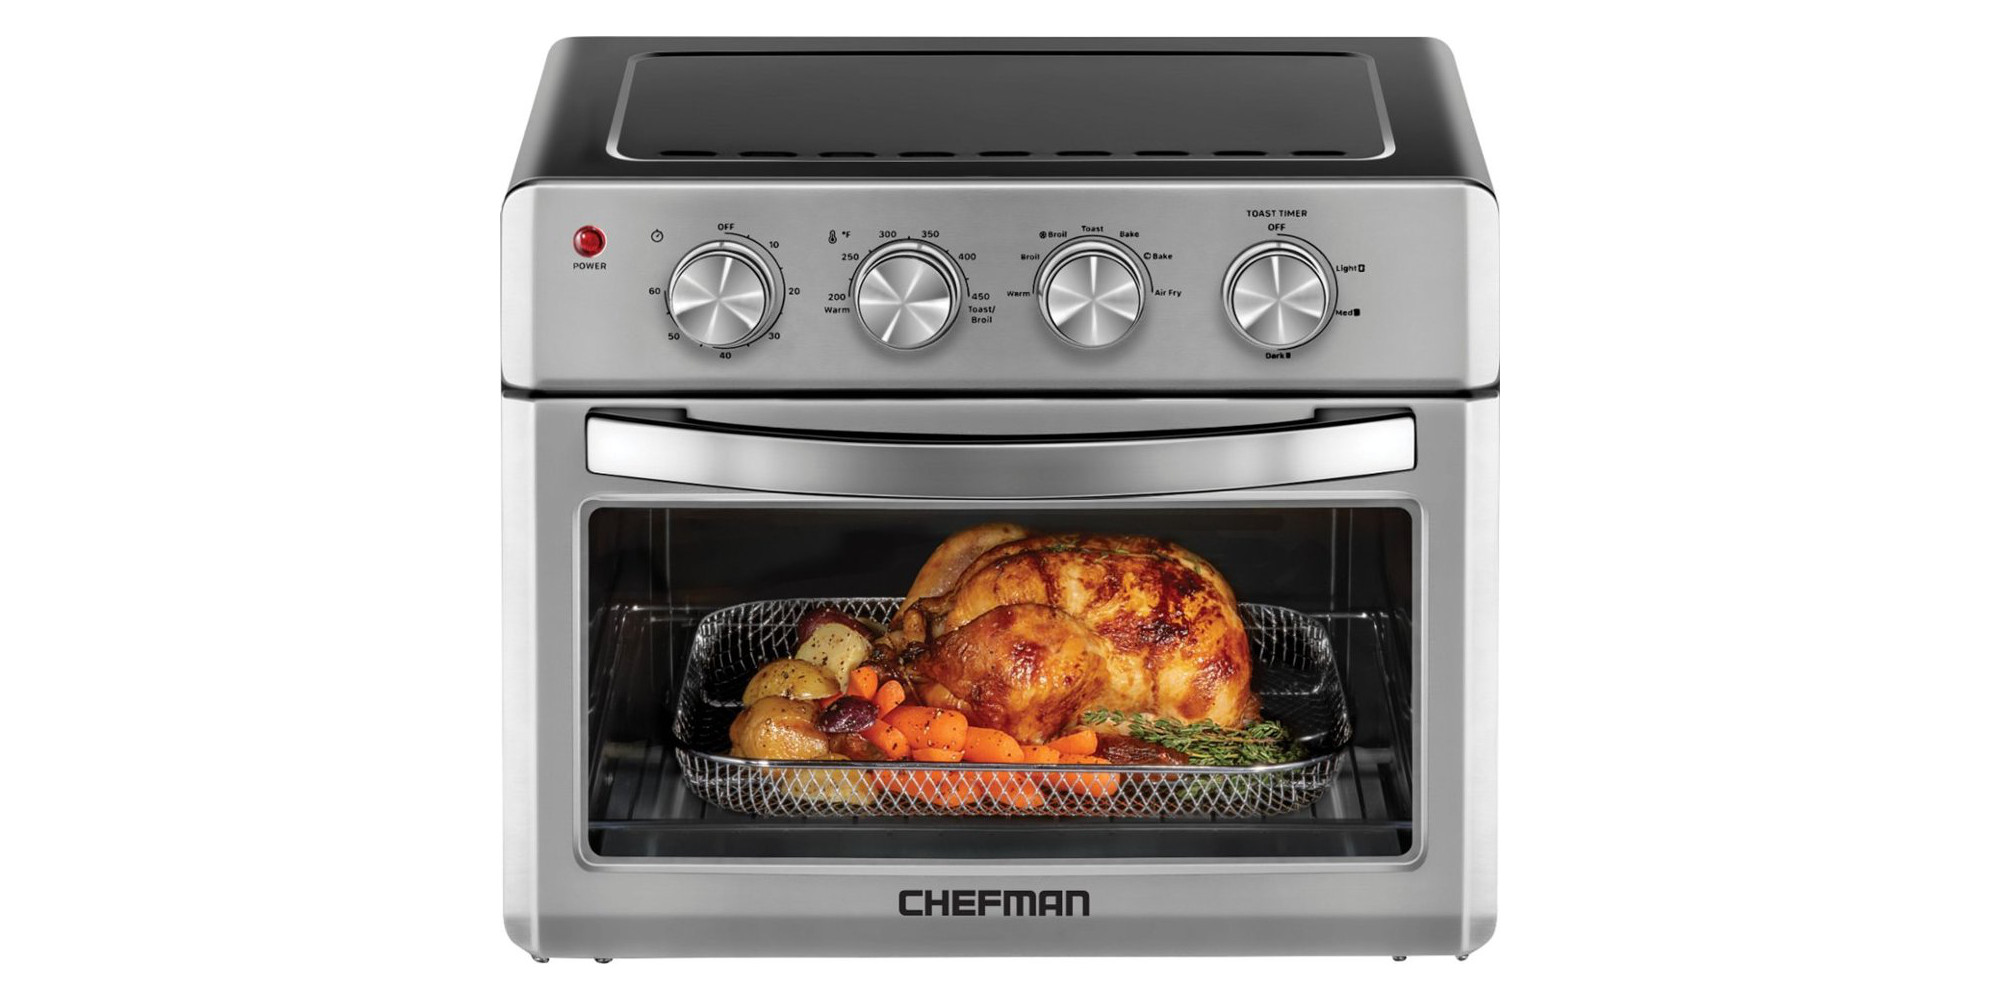 Chefman S Combo Toaster Oven Air Fryer Is Up To 100 Off Today At